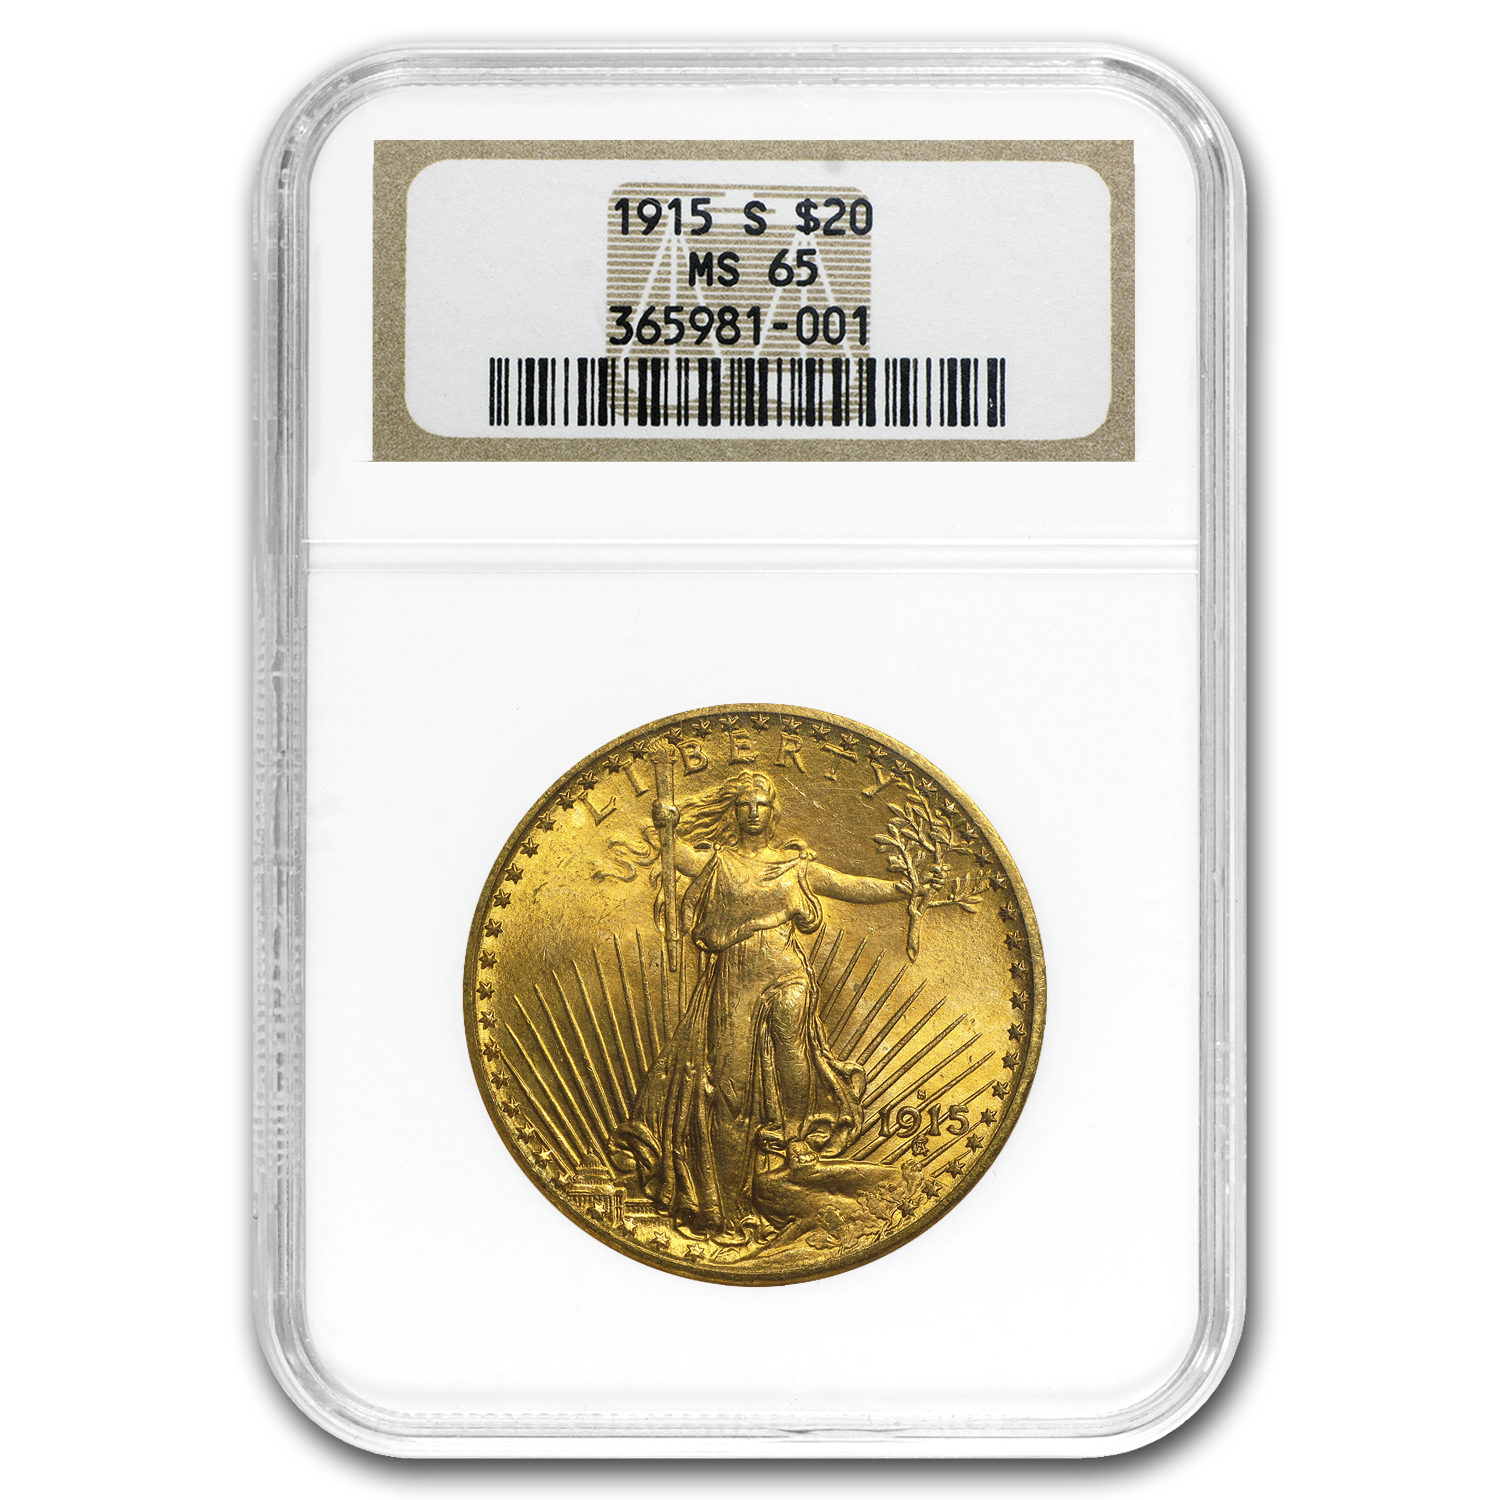 1915-S $20 Saint-Gaudens Gold Double Eagle MS-65 NGC